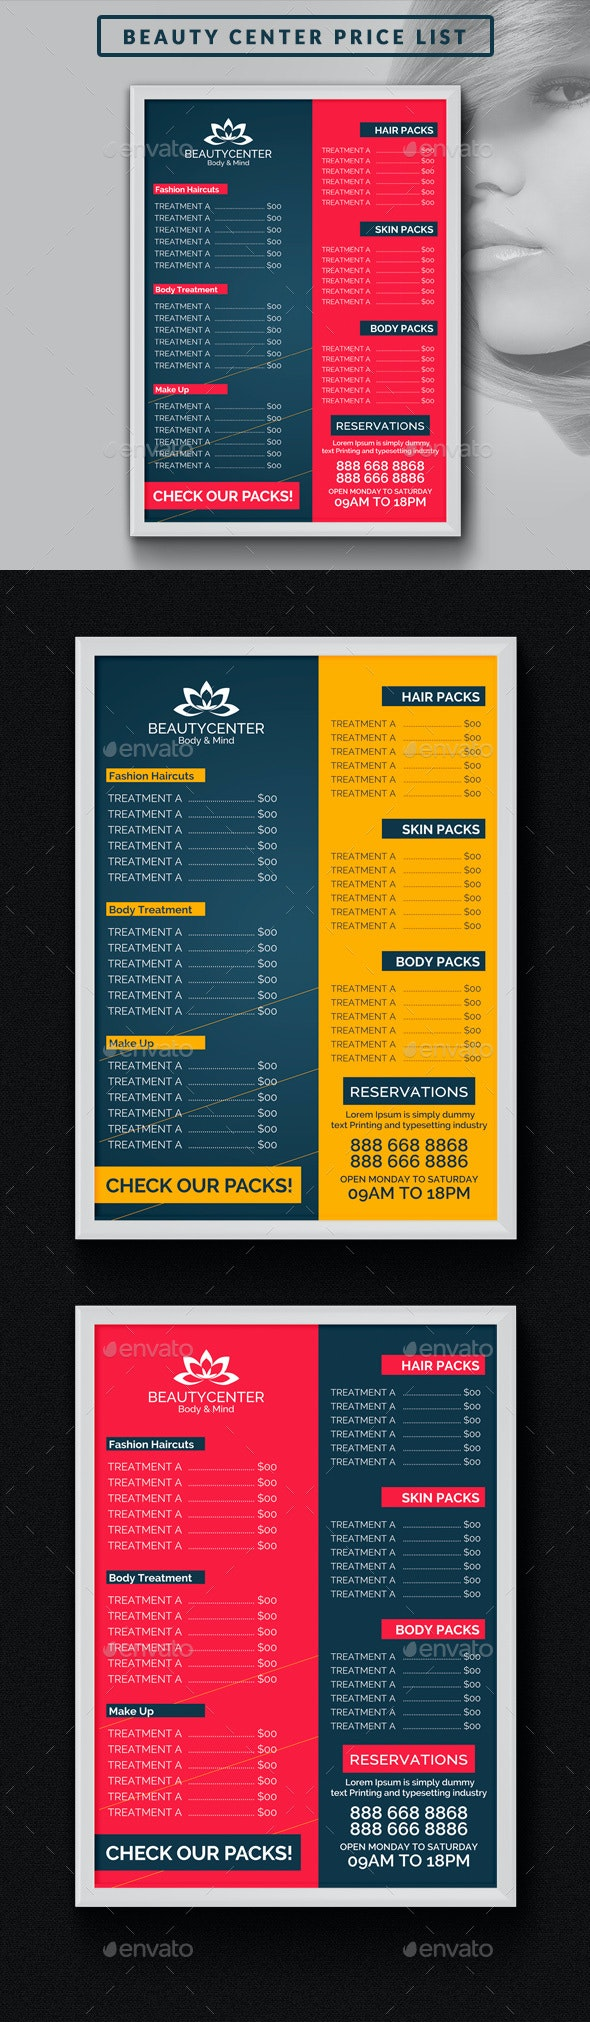 Beauty Center Price List Template - Miscellaneous Print Templates